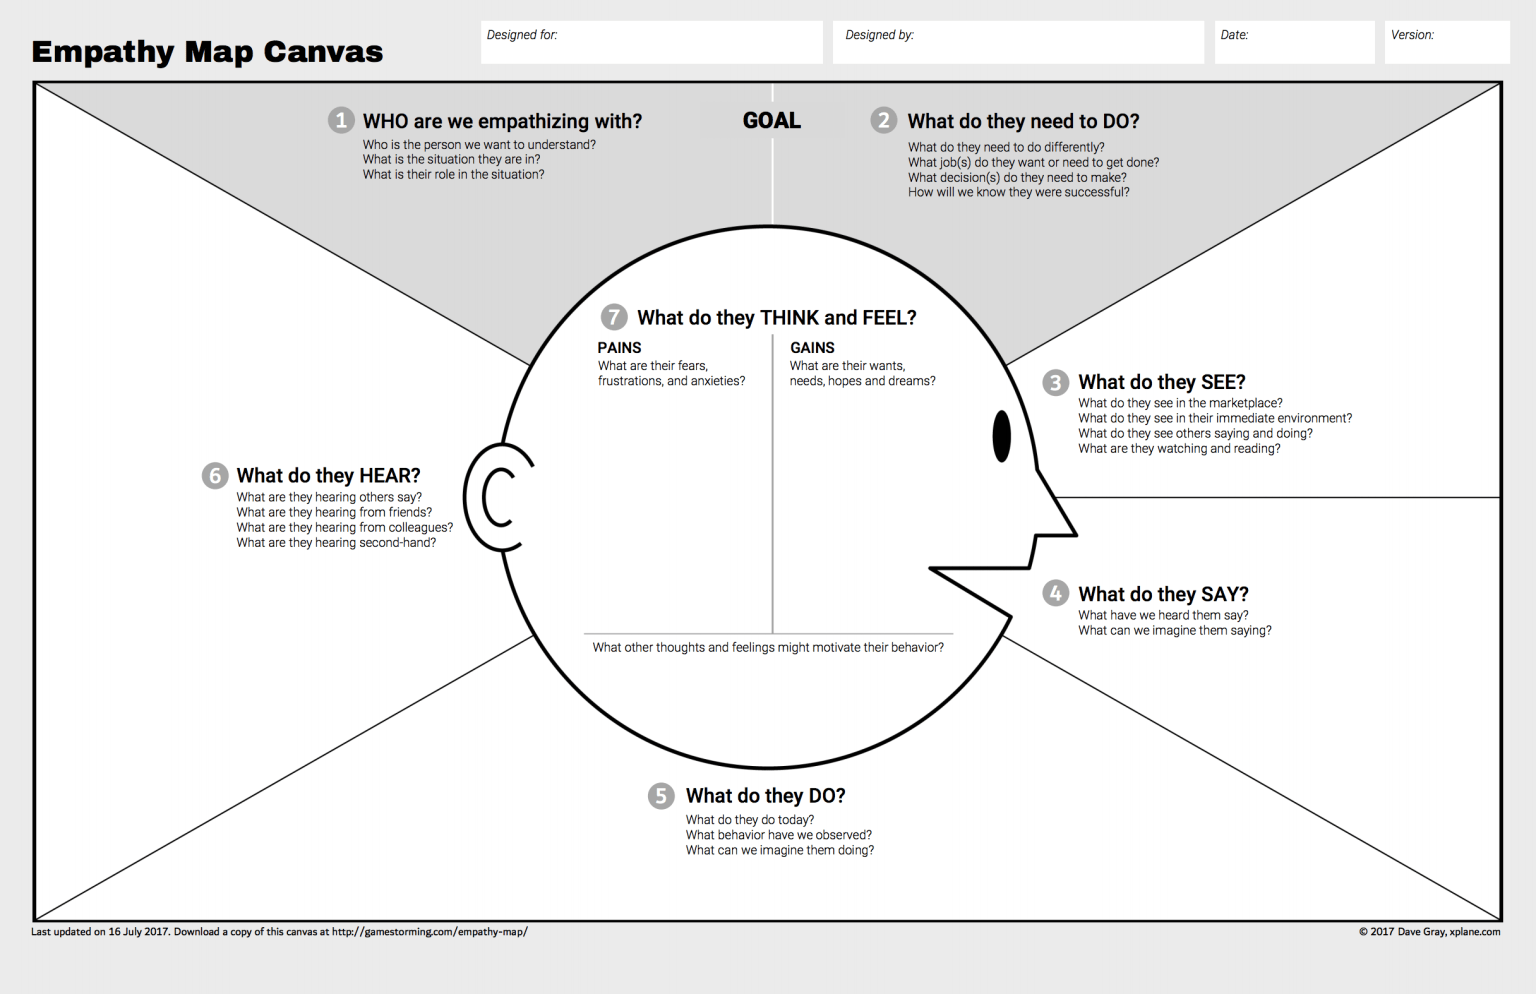 Empathy Map Canvas